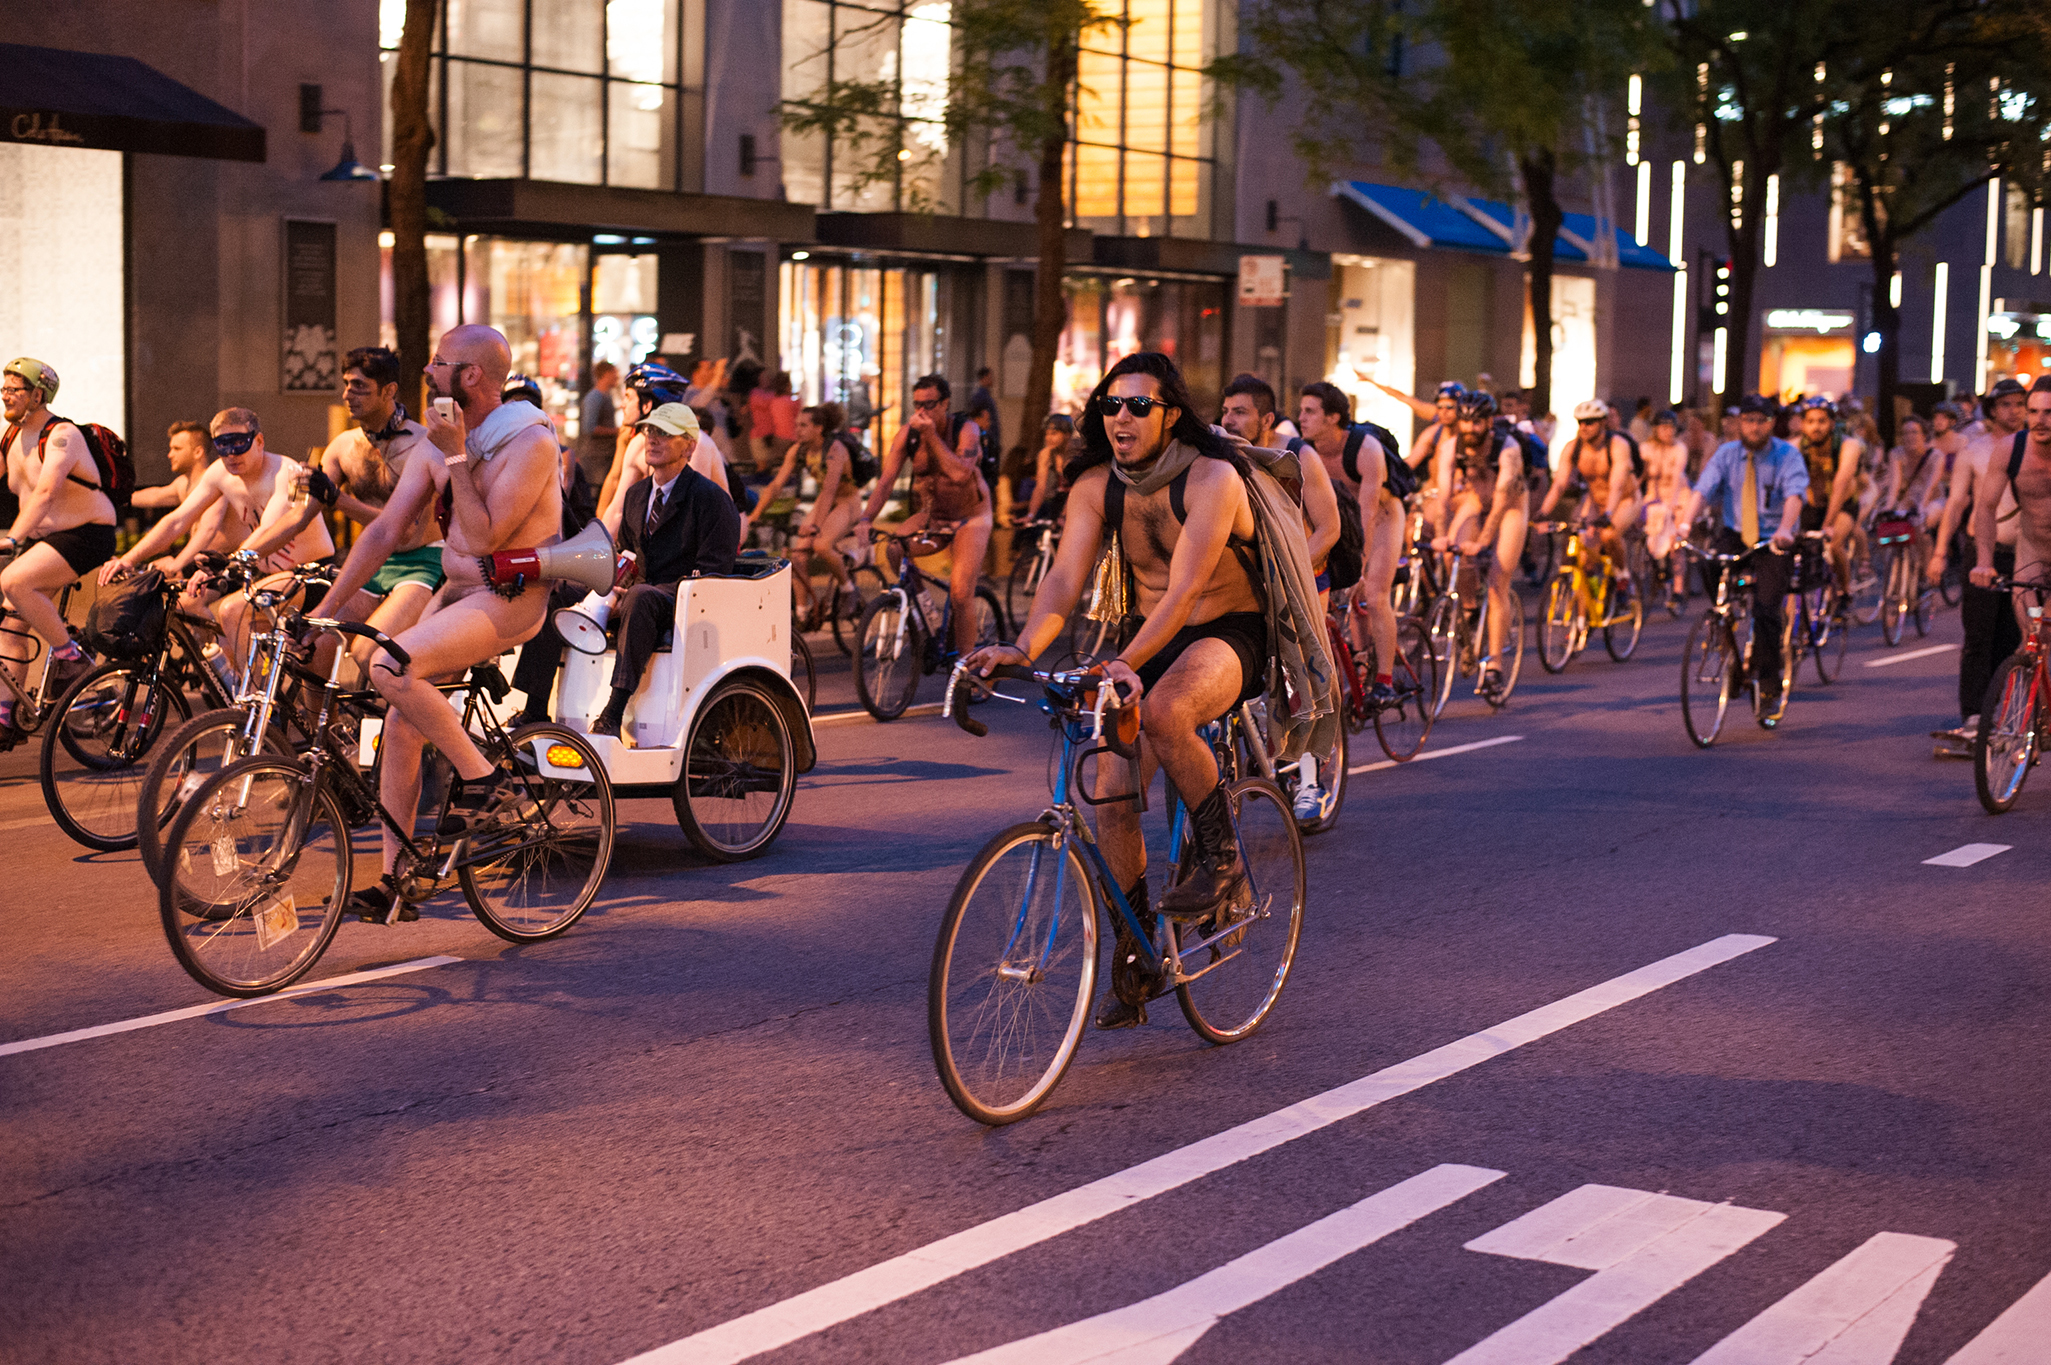 World Naked Bike Ride 2014 photos